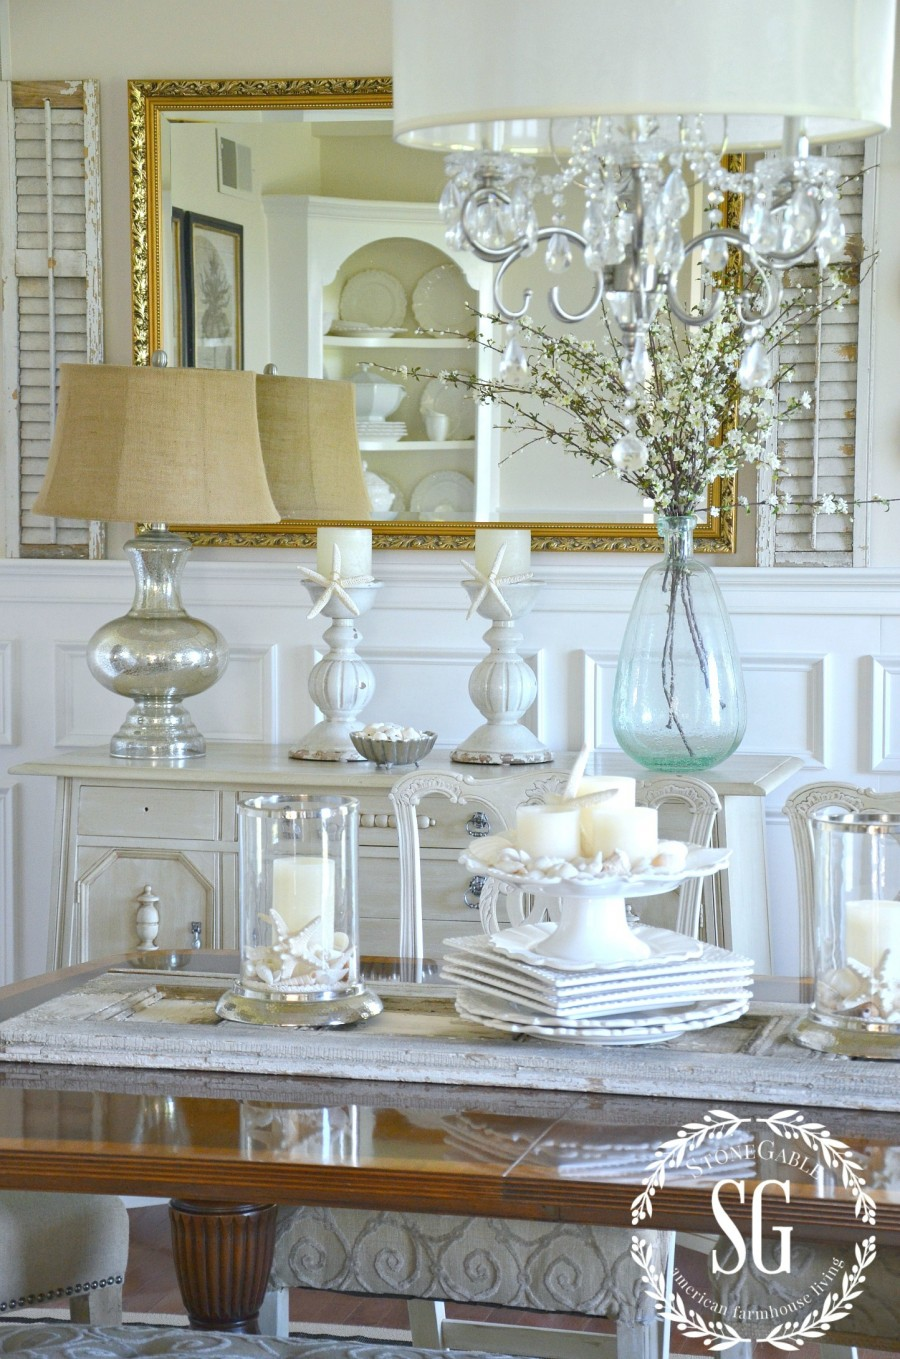 DECORATING WITH NEUTRALS-use different hues and neutral colors-stonegableblog.com